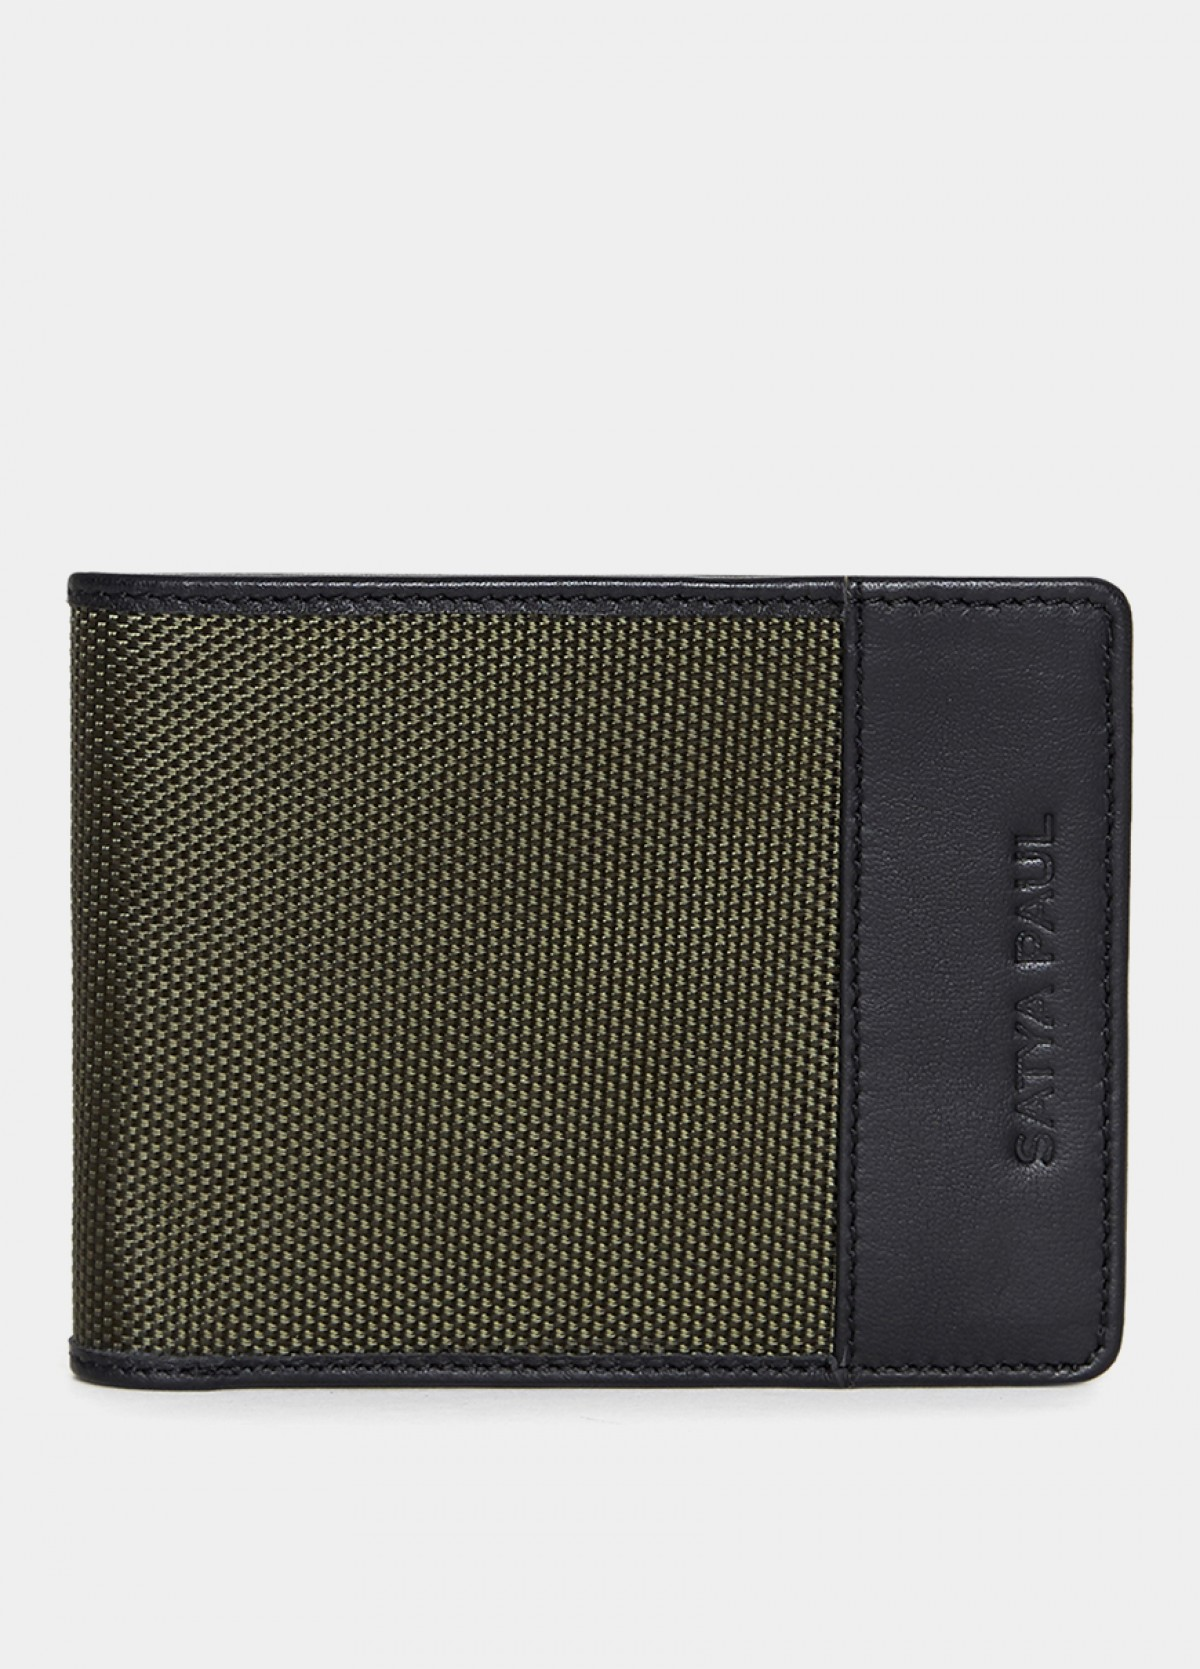 The Him & The City Men'S Bi Fold Wallet With Coin Pocket Olive